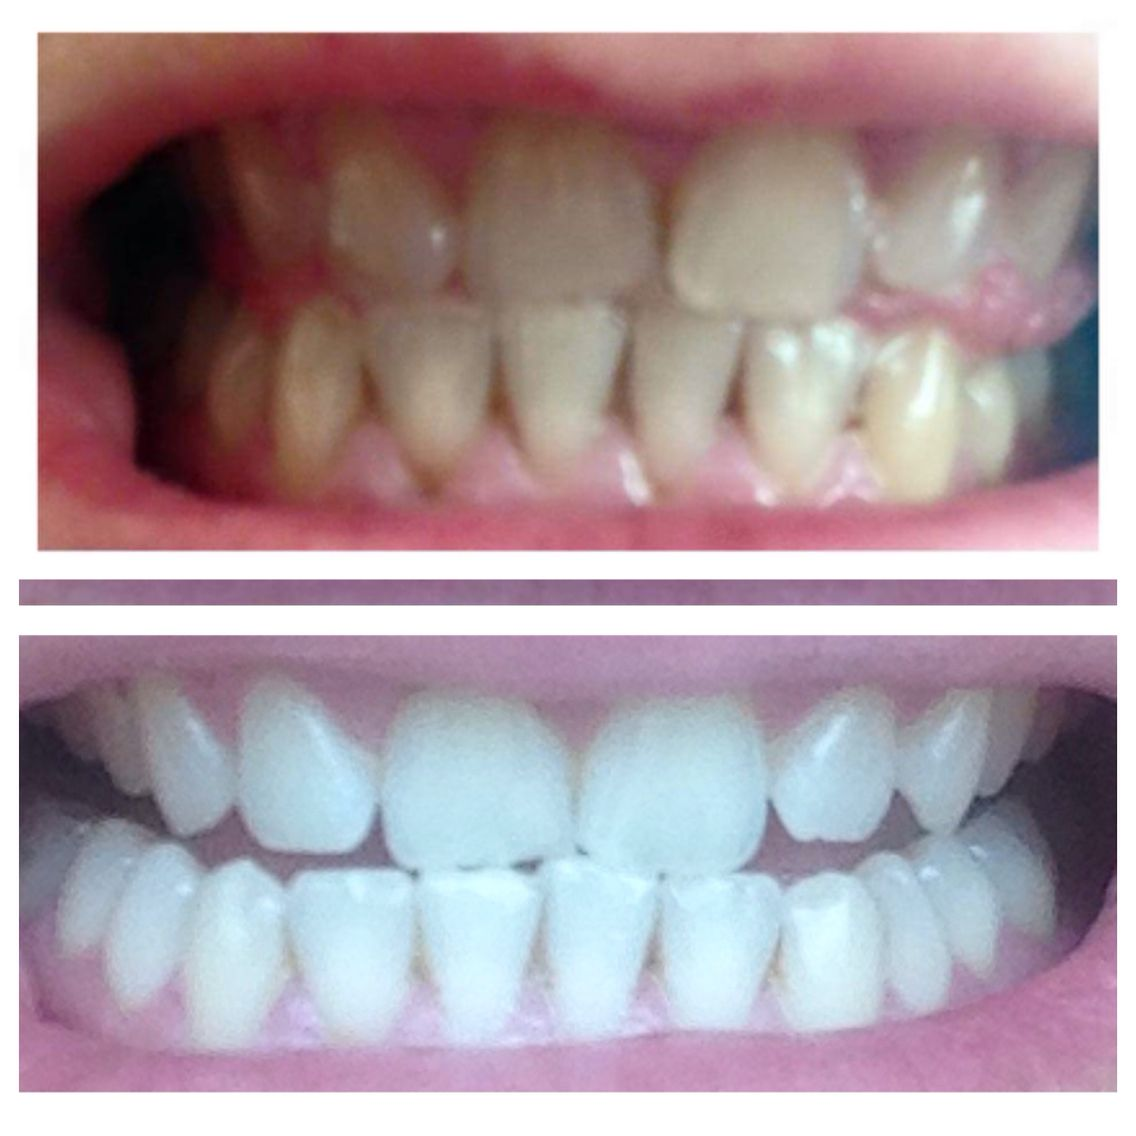 Peroxide free toothpaste- 4 days in between